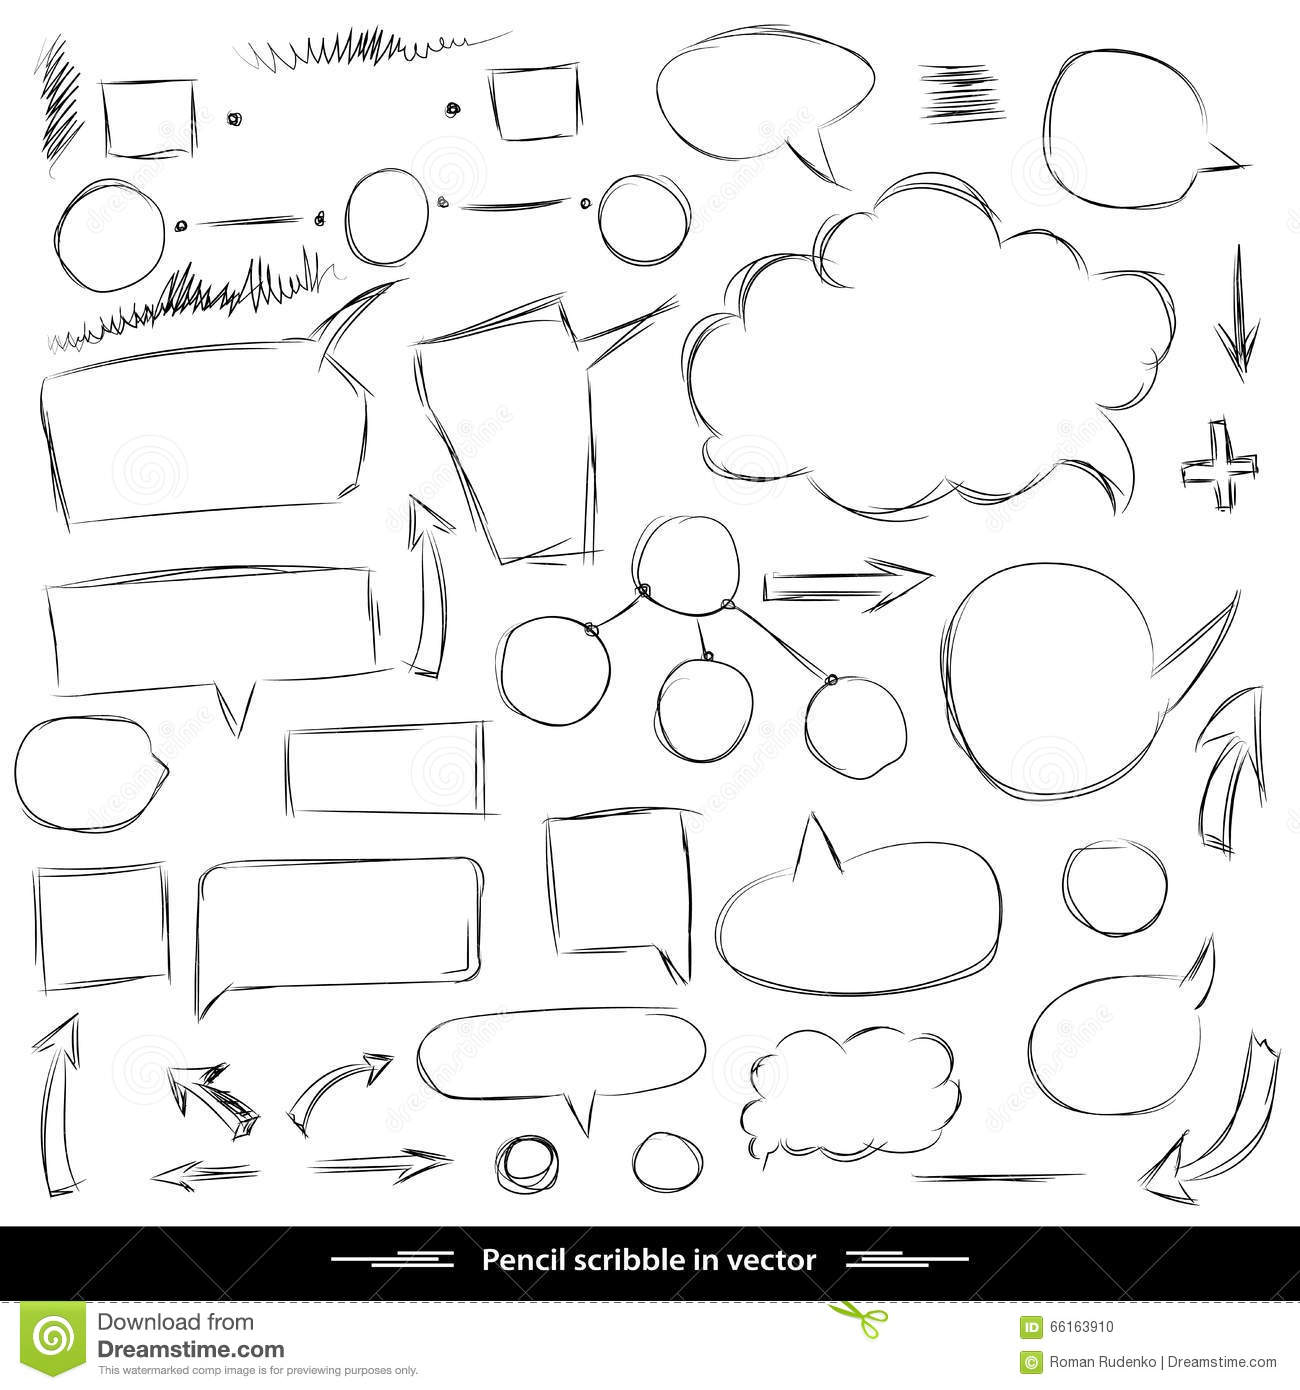 Line Drawing Shapes : Pencil sketches hand drawn scribble shapes a set of